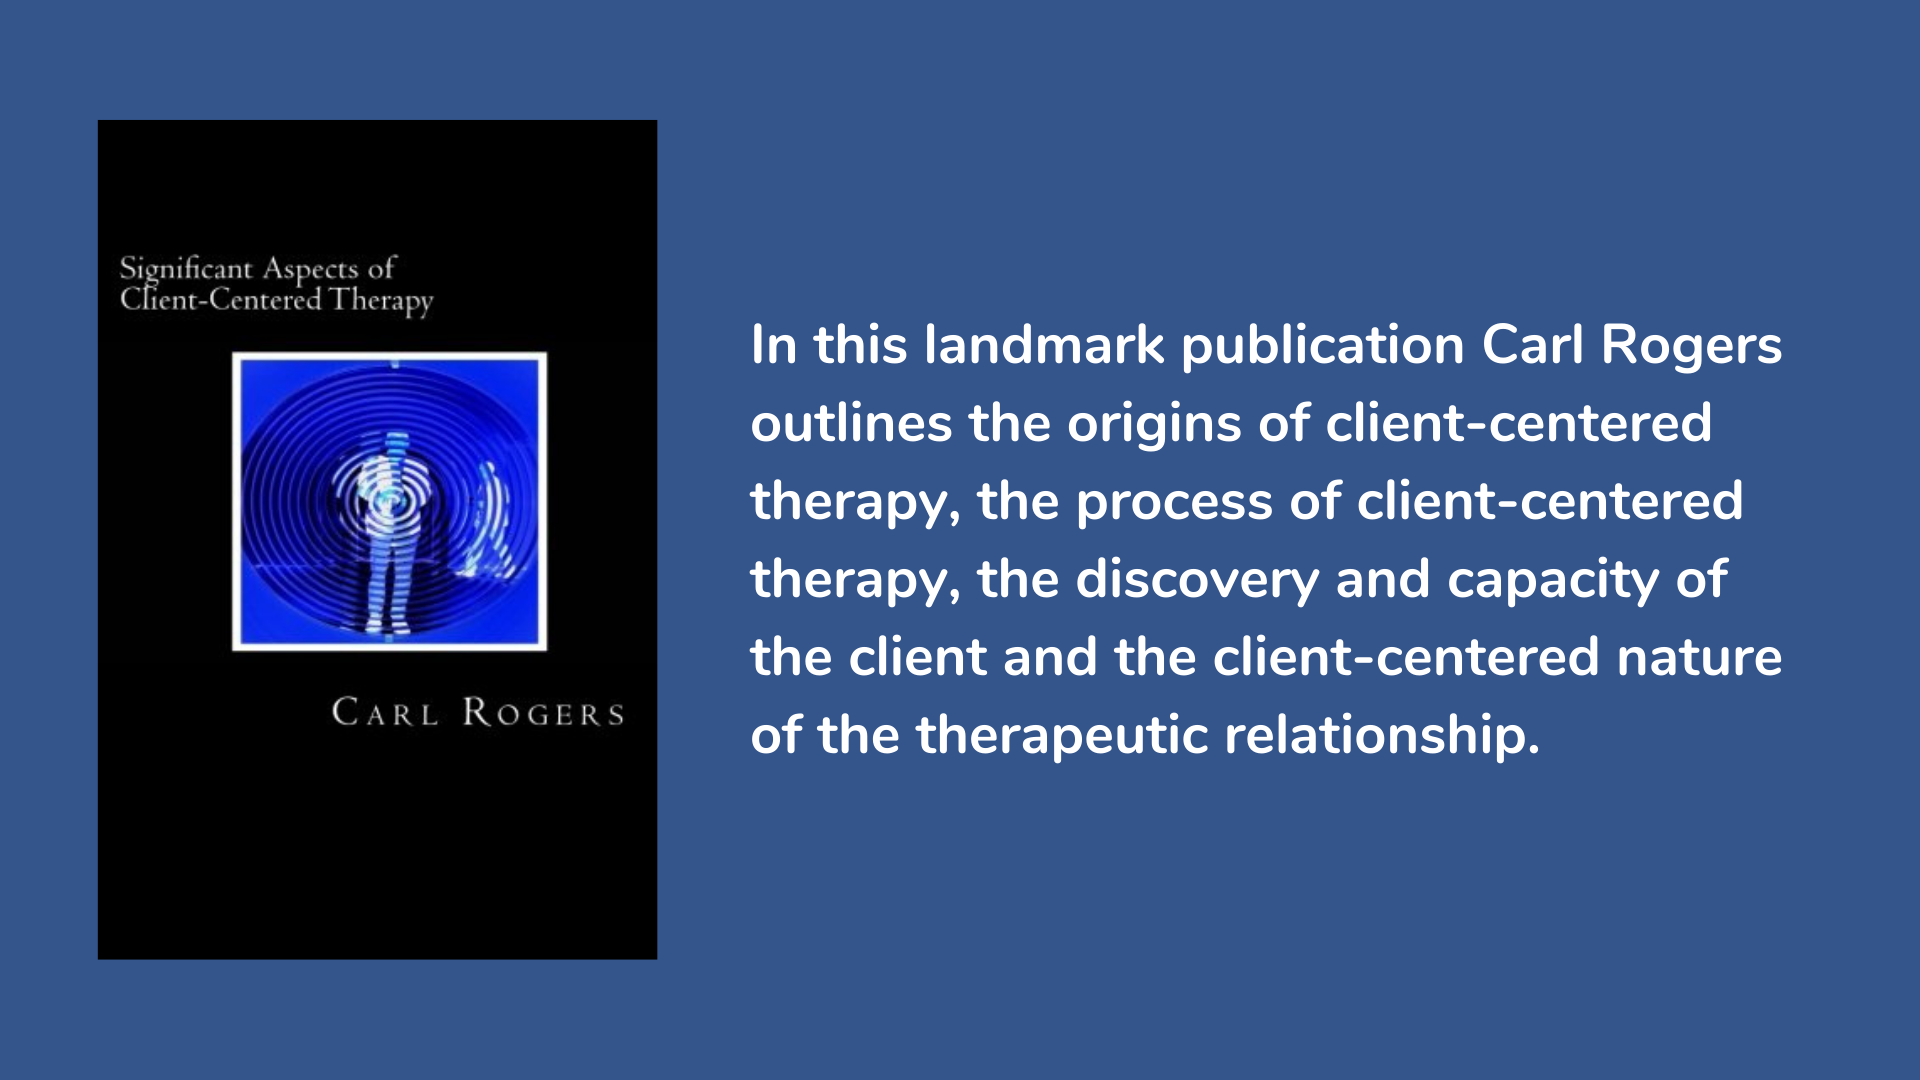 Significant Aspects of Client-Centered Therapy by Carl Rogers, Book Cover and Description